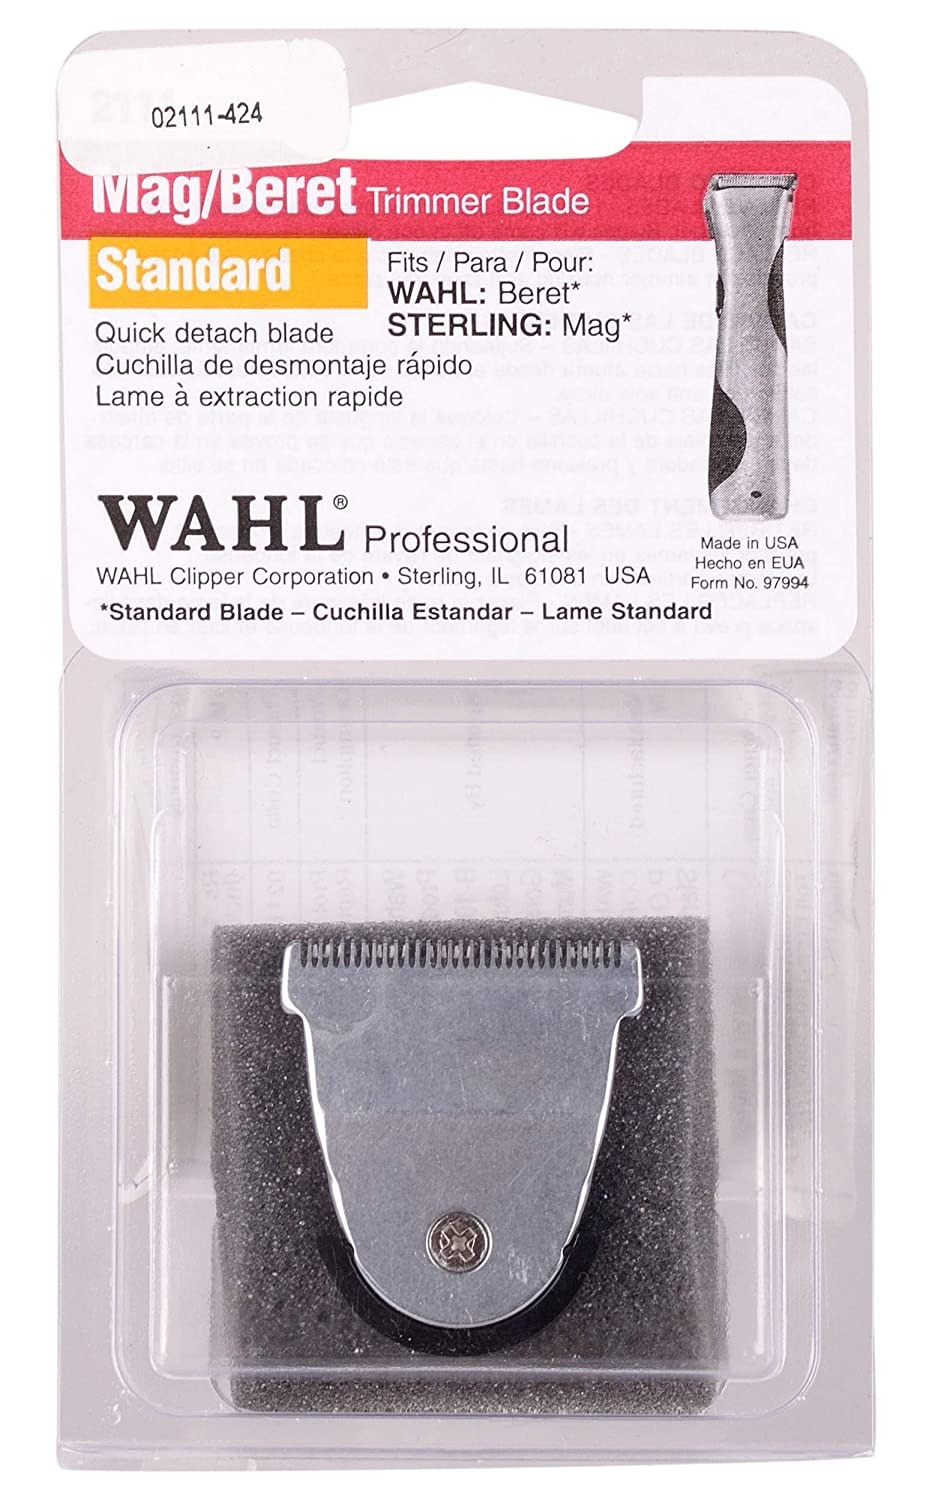 Wahl Professional Detachable Replacement Blade #2111 – Fits Echo, Beret, MAG and Sterling 4 Trimmer Models Wahl Professional Animal